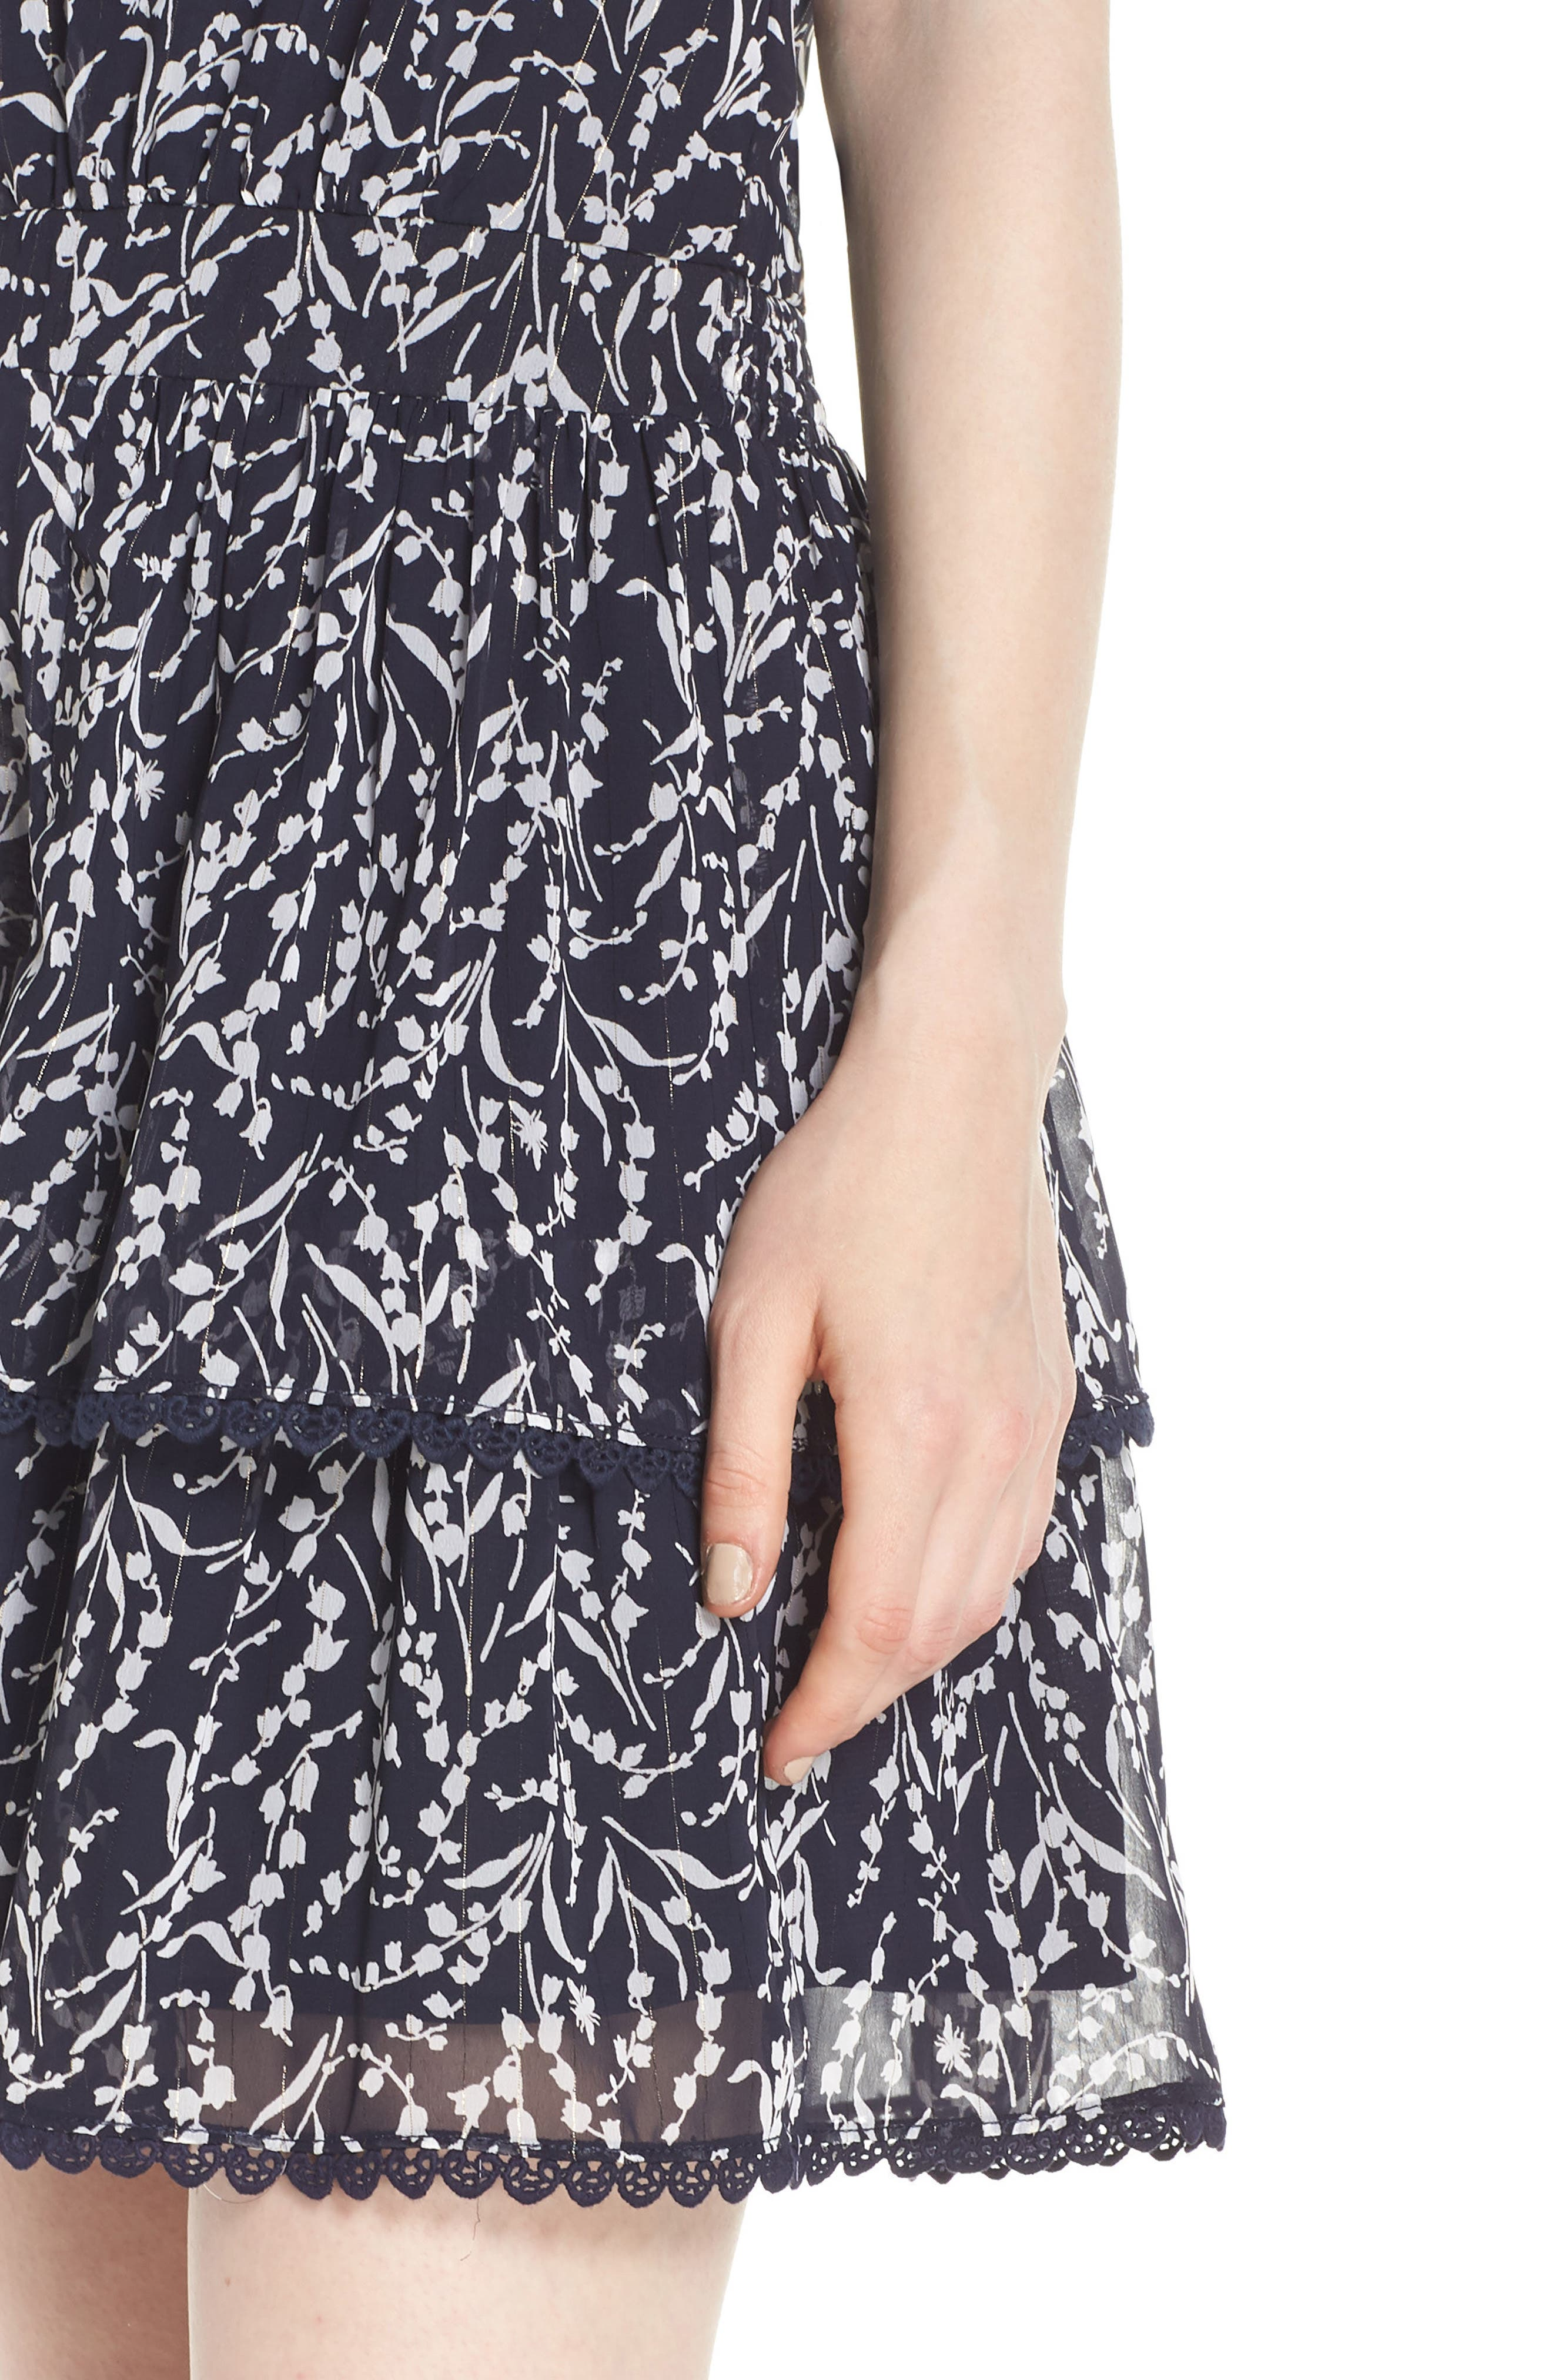 19 COOPER, Tiered Floral Sleeveless Dress, Alternate thumbnail 5, color, NAVY/ WHITE